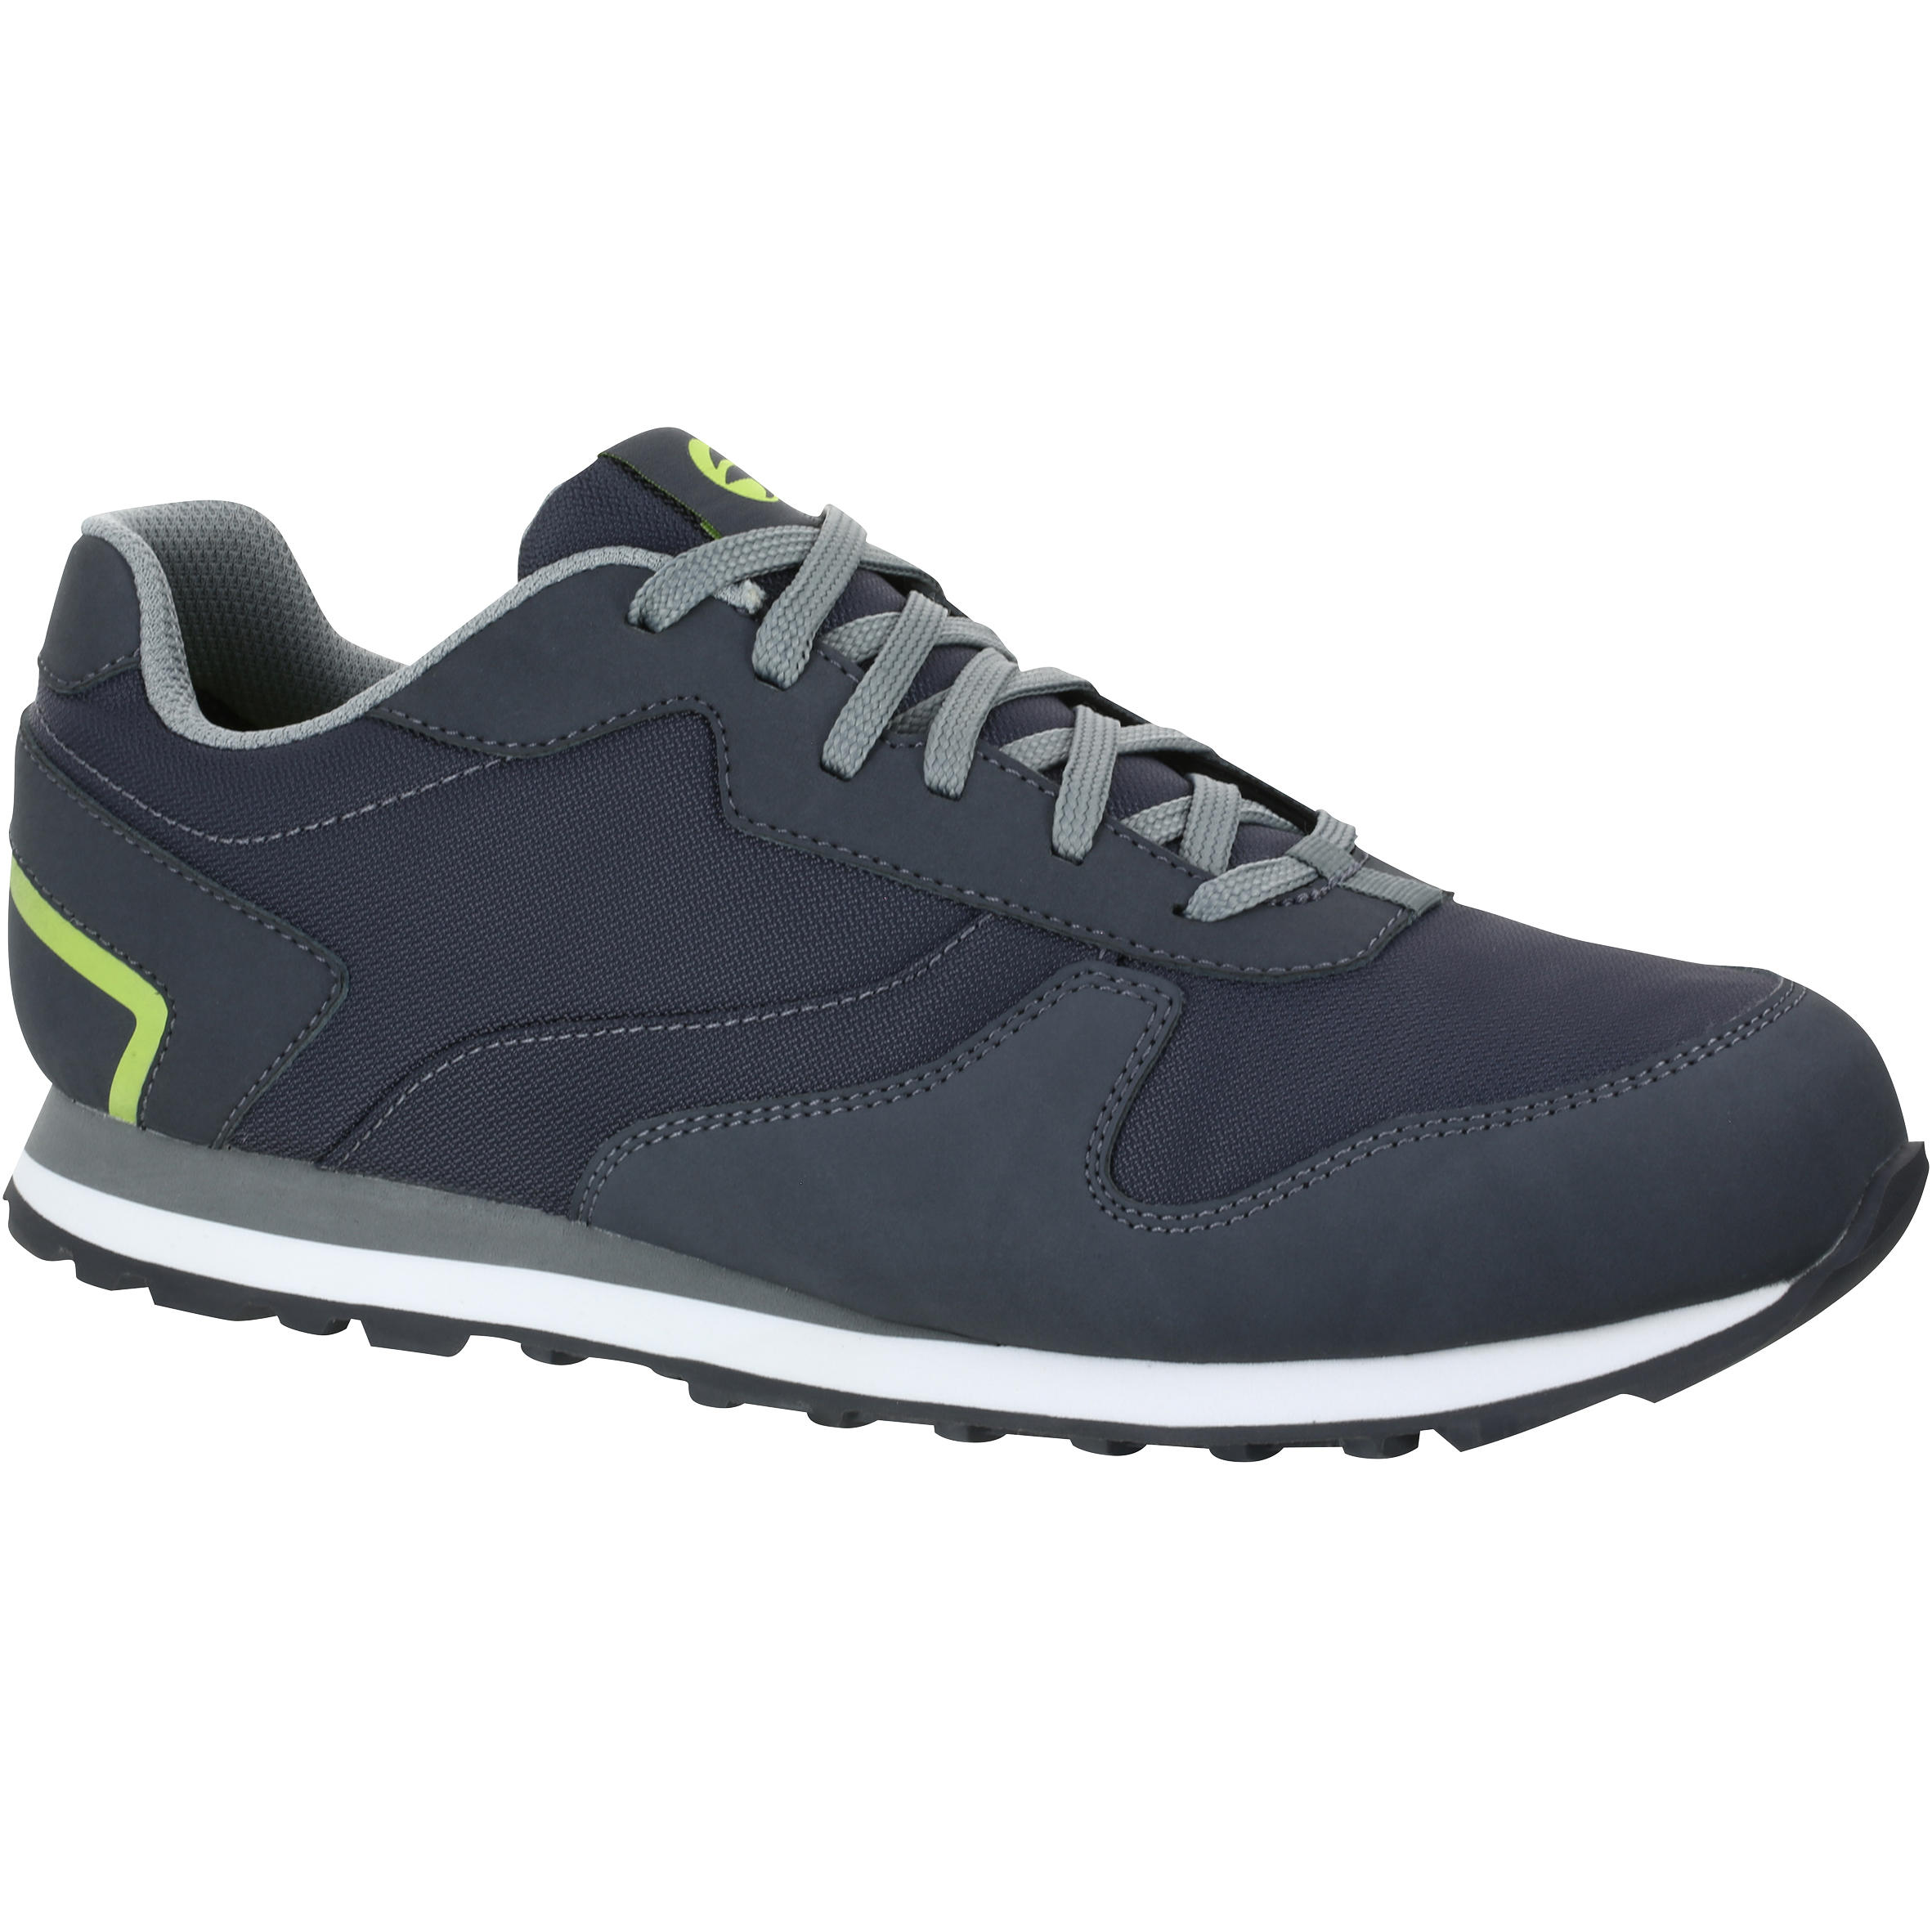 Inesis Golfschoenen heren Spikeless 500